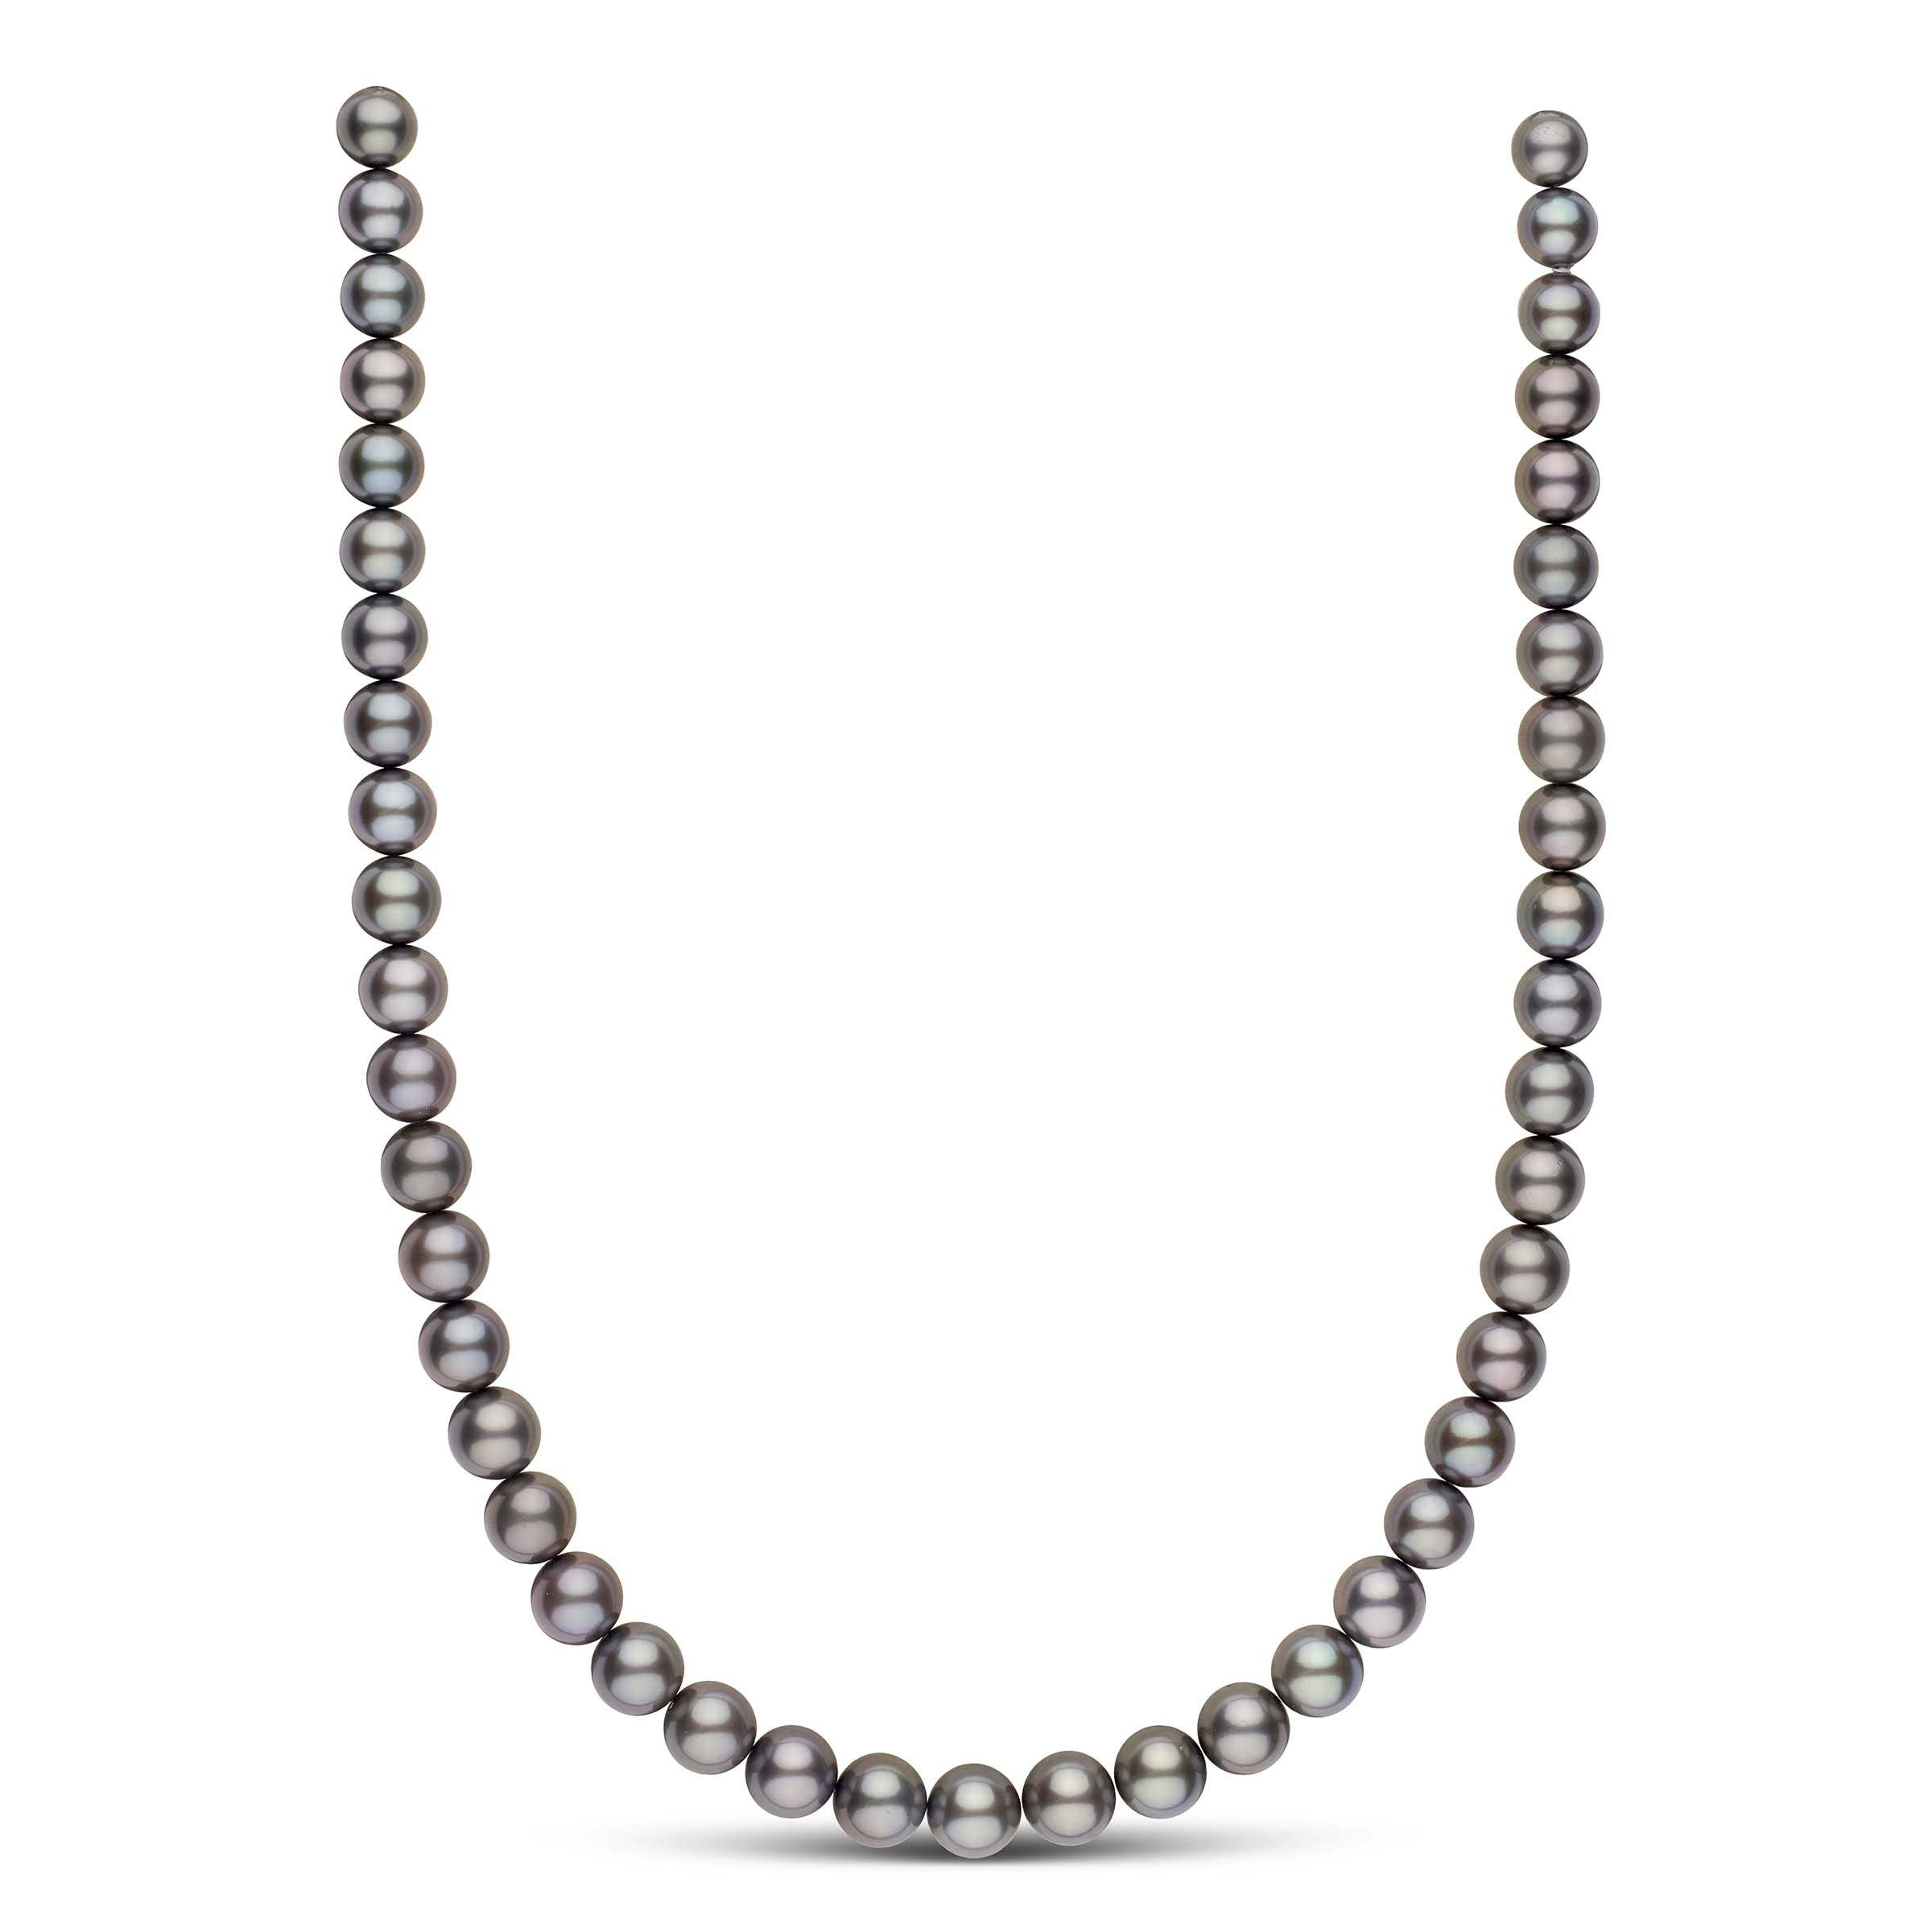 18-inch 8.0-9.9 mm AAA Round Tahitian Pearl Necklace